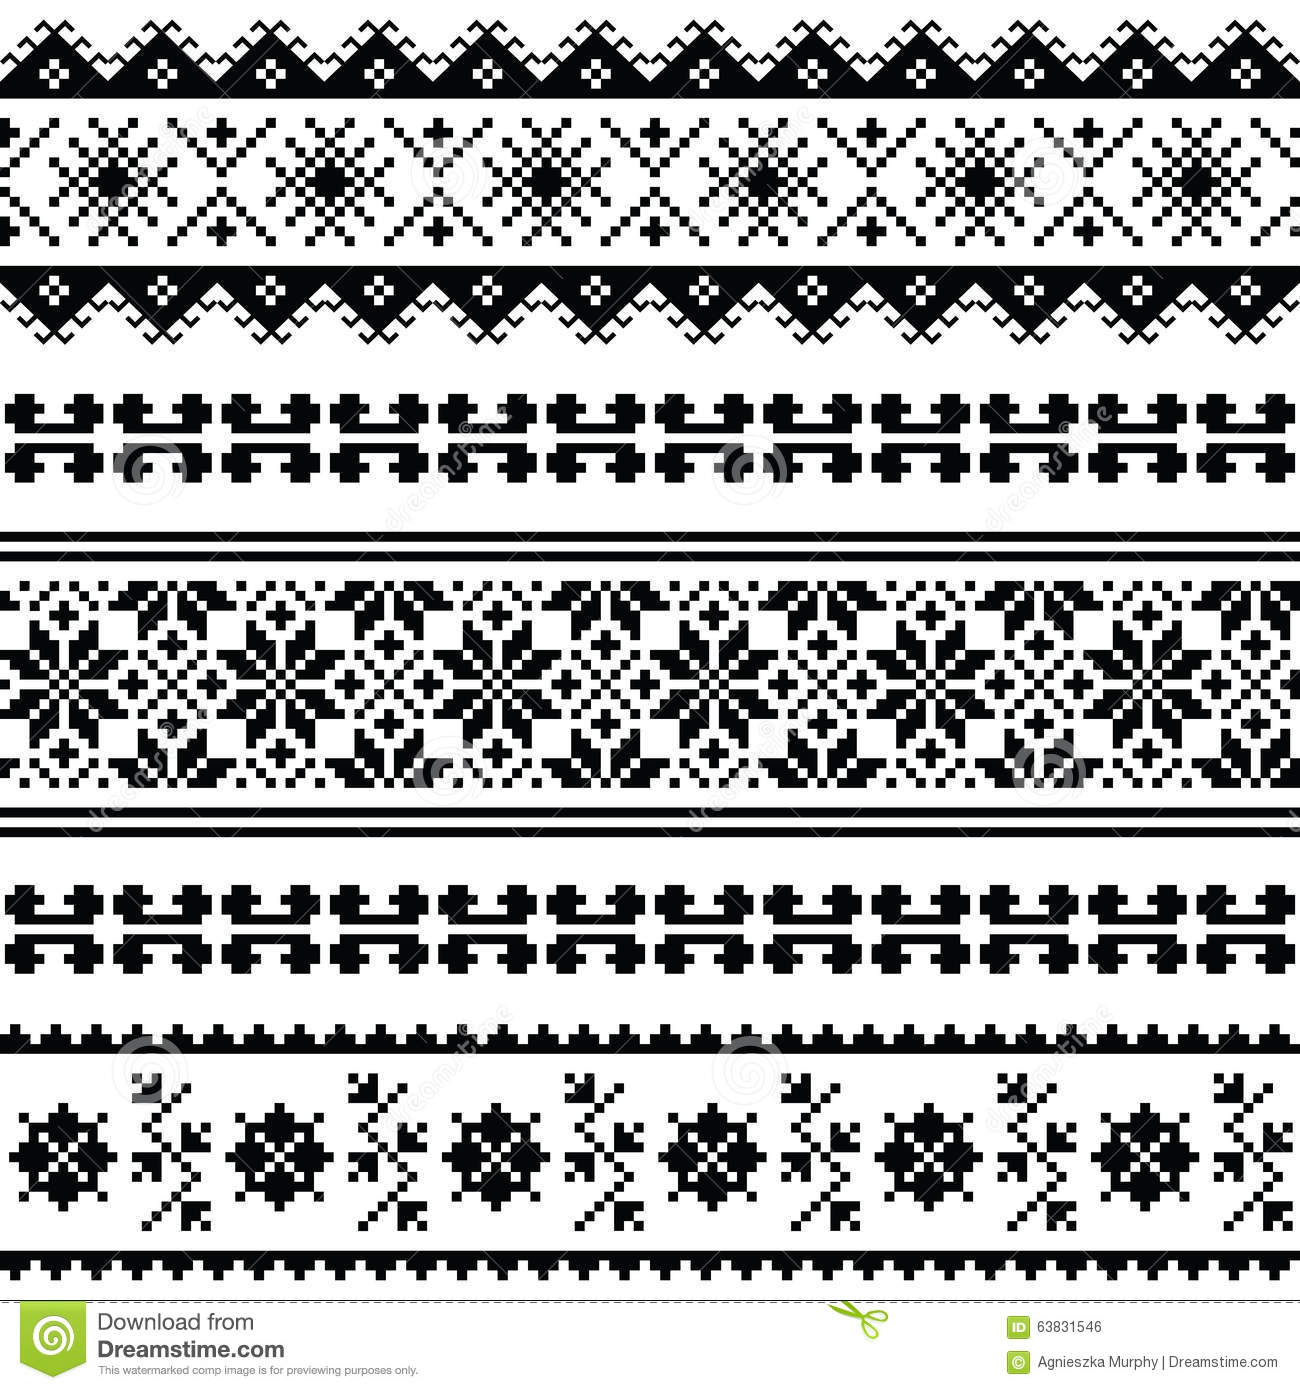 Ukrainian, Belarusian Folk Art Embroidery Pattern Or Print In Black ...